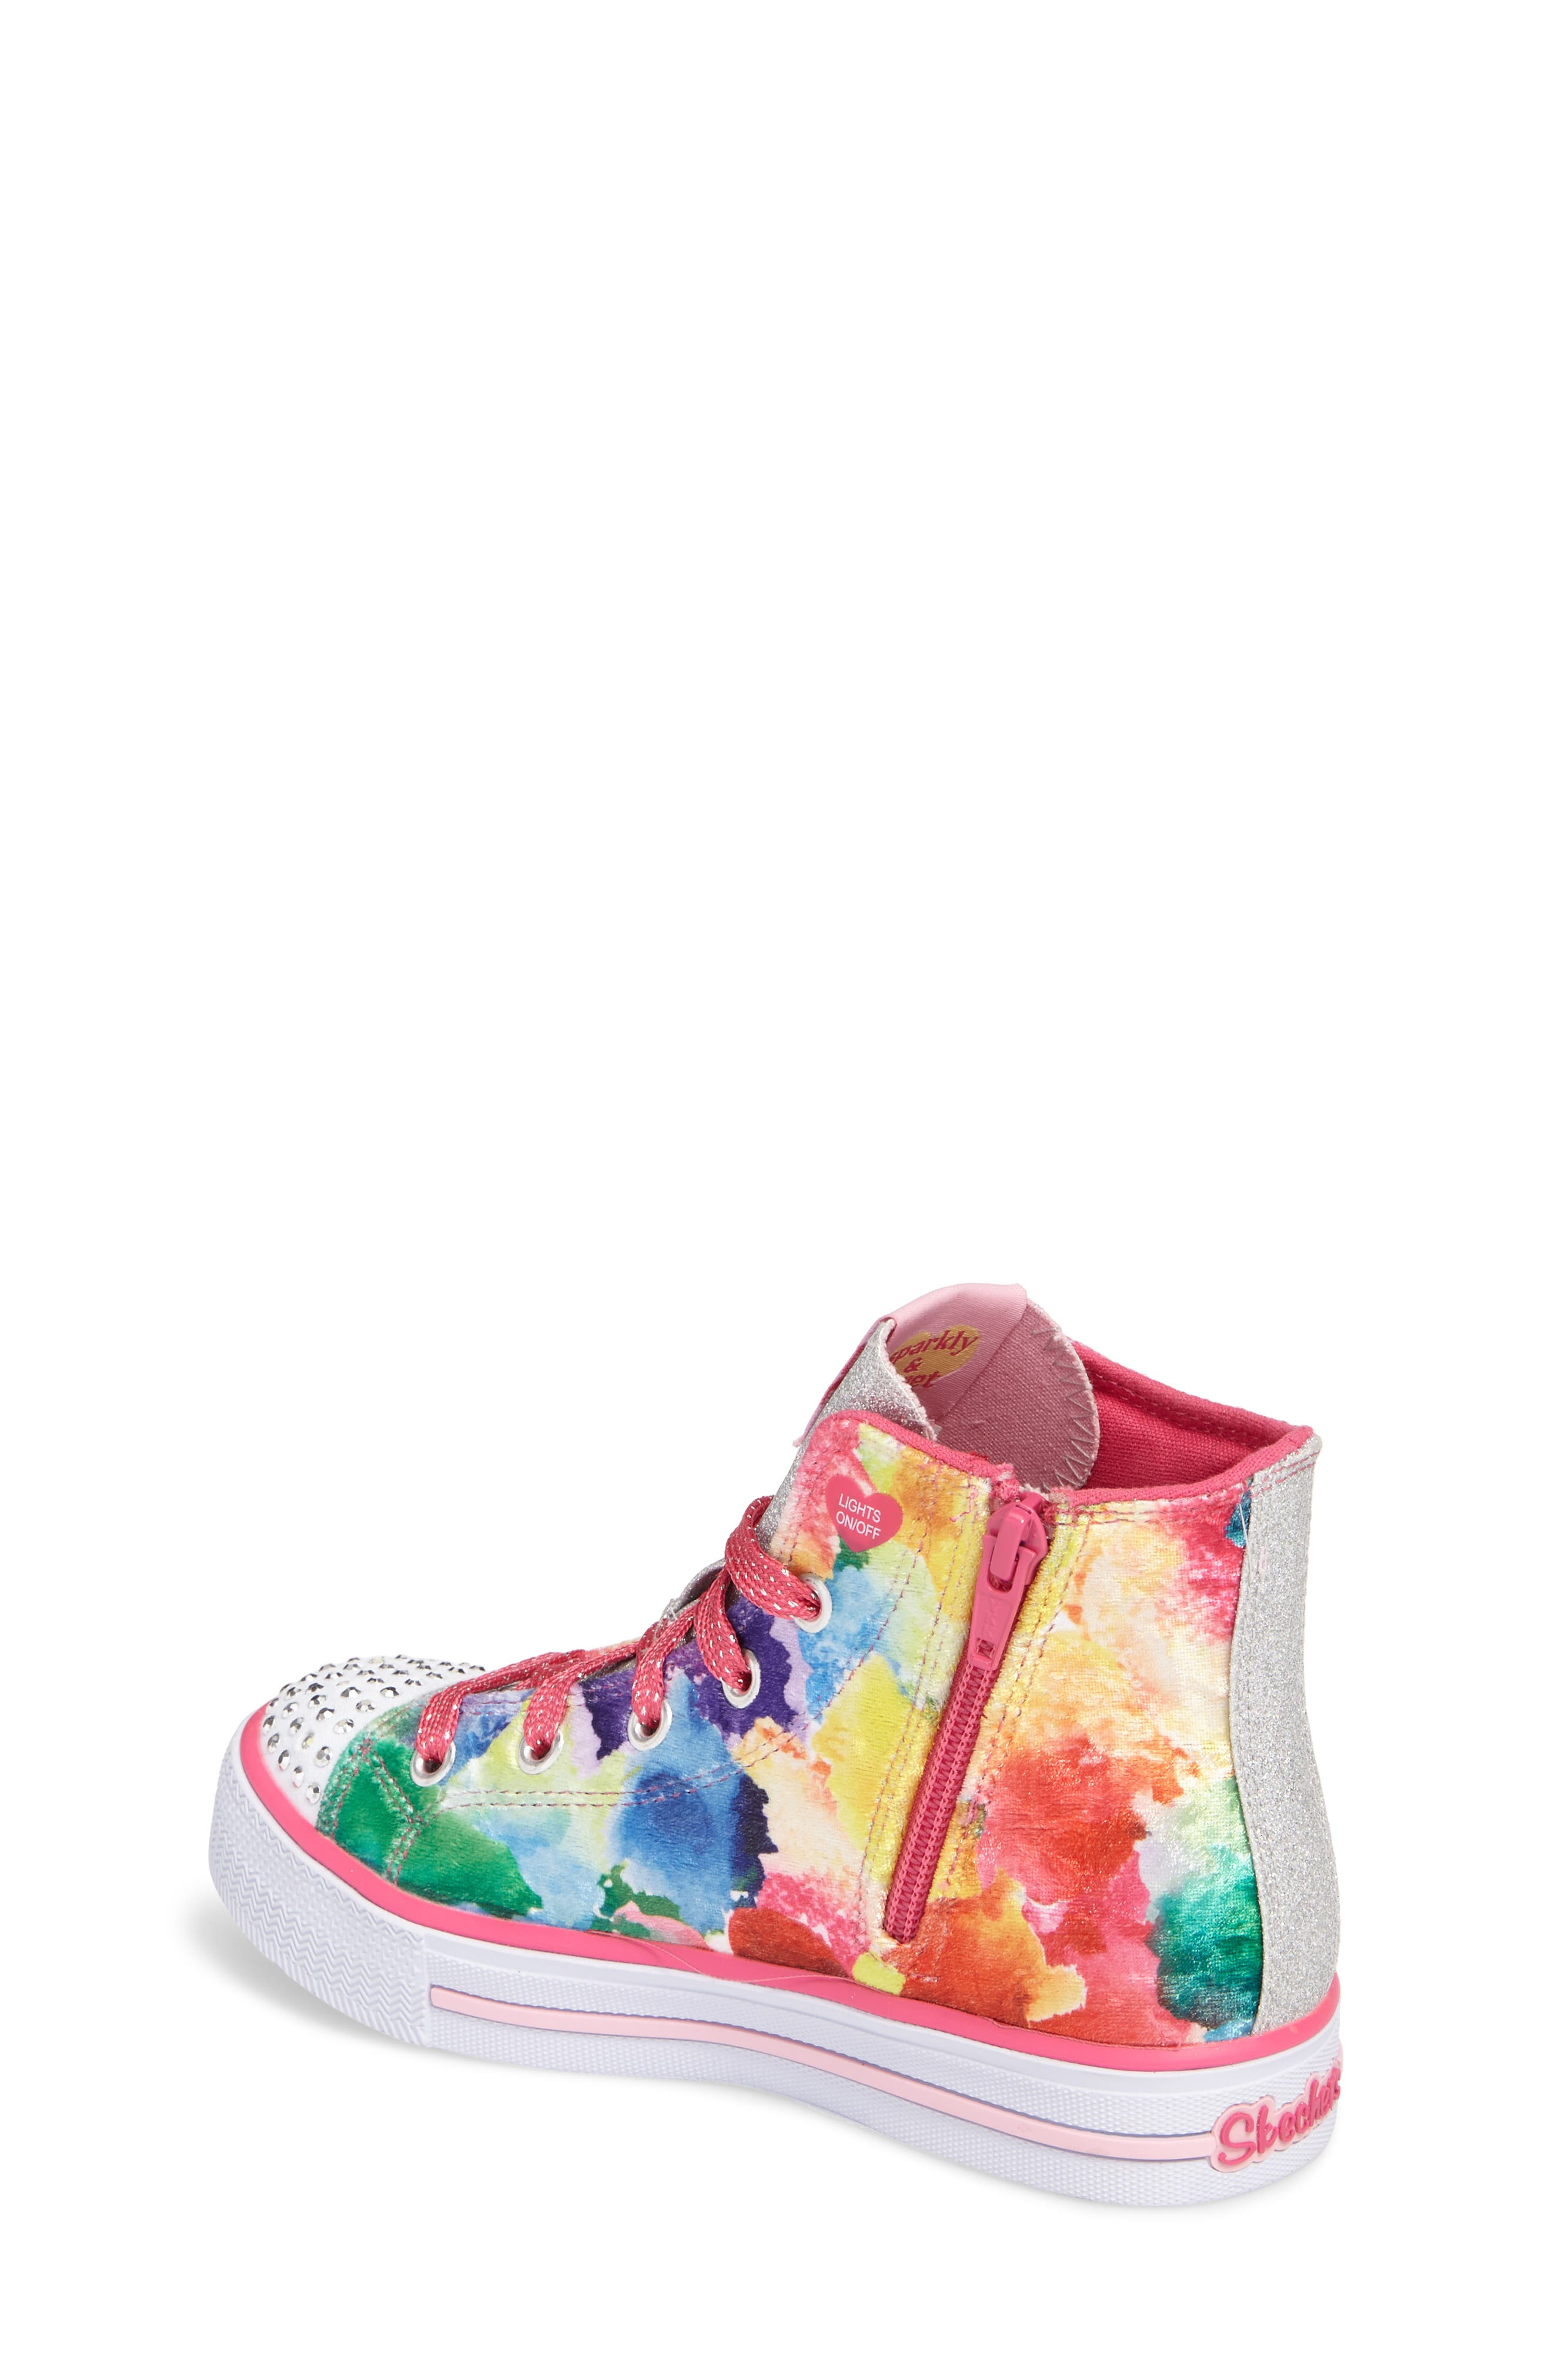 Twinkle Toes Shuffles Light-Up High Top Sneaker,                             Alternate thumbnail 2, color,                             Hot Pink/ Multi